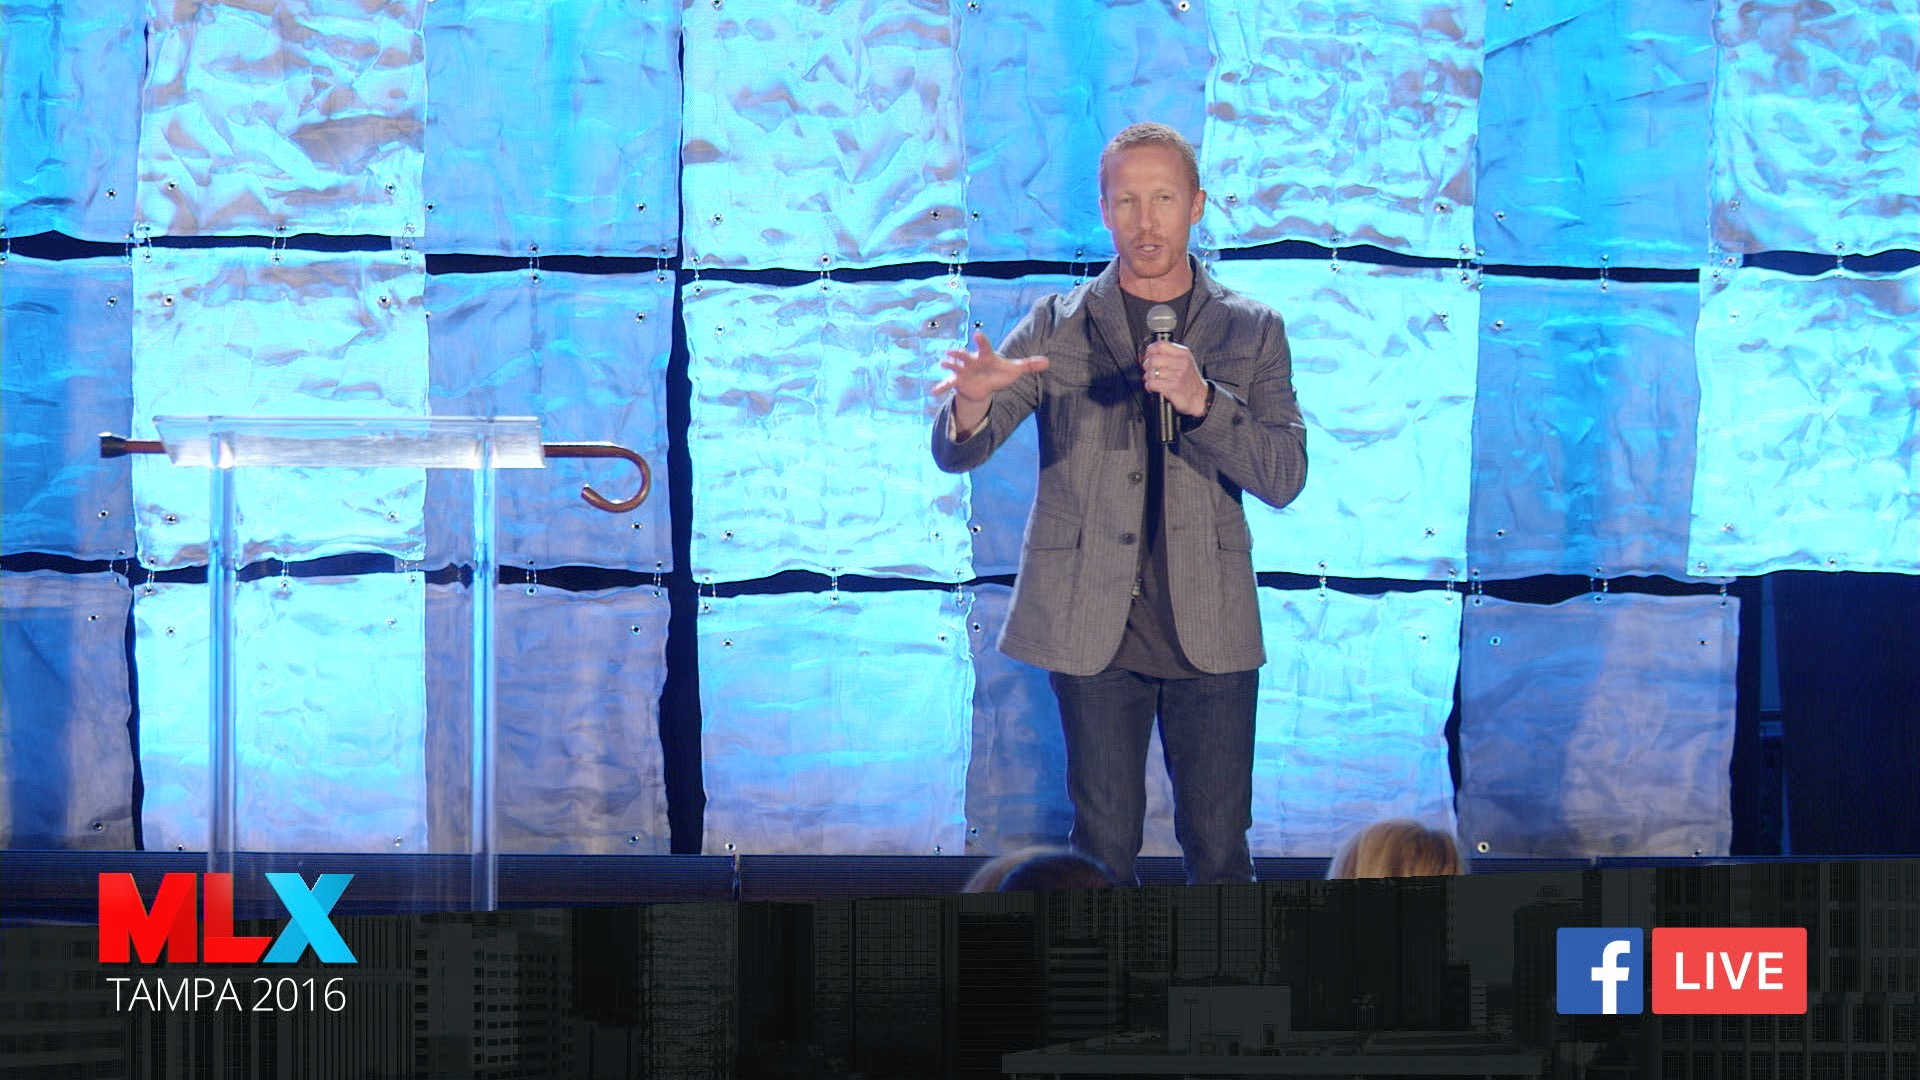 Maximized Living Co-Founder, Ben Lerner,streaming live to Facebook from their Tampa conference.